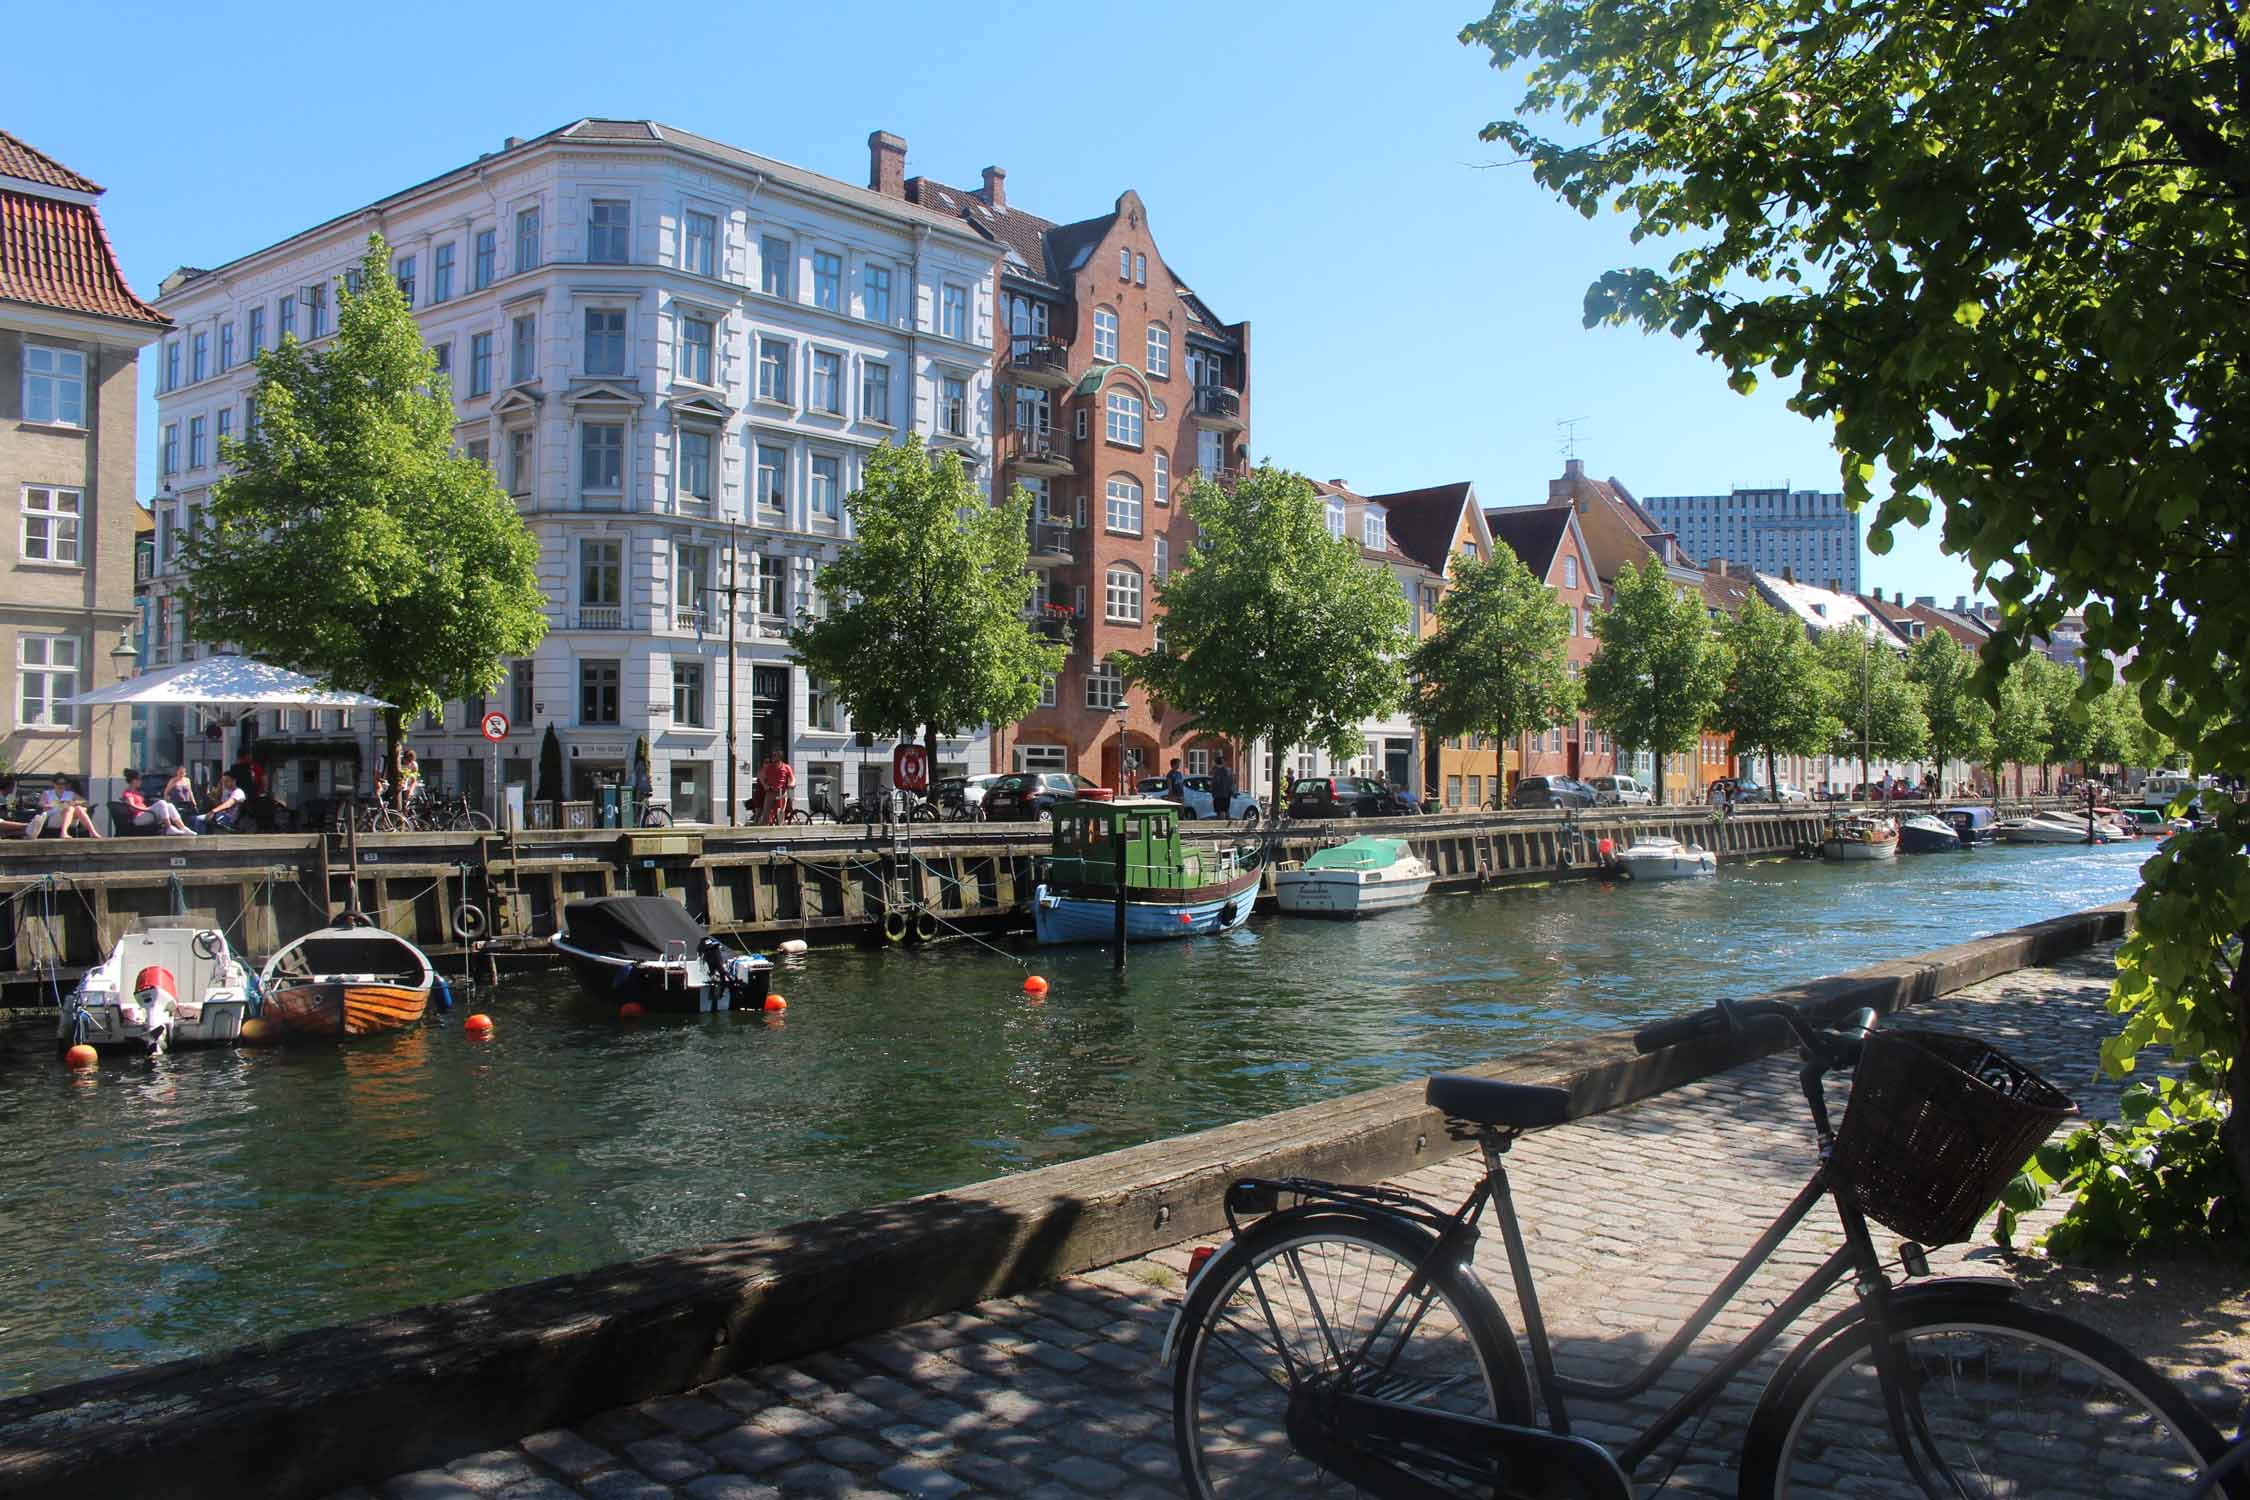 Copenhague, canal Christianhavns, vista